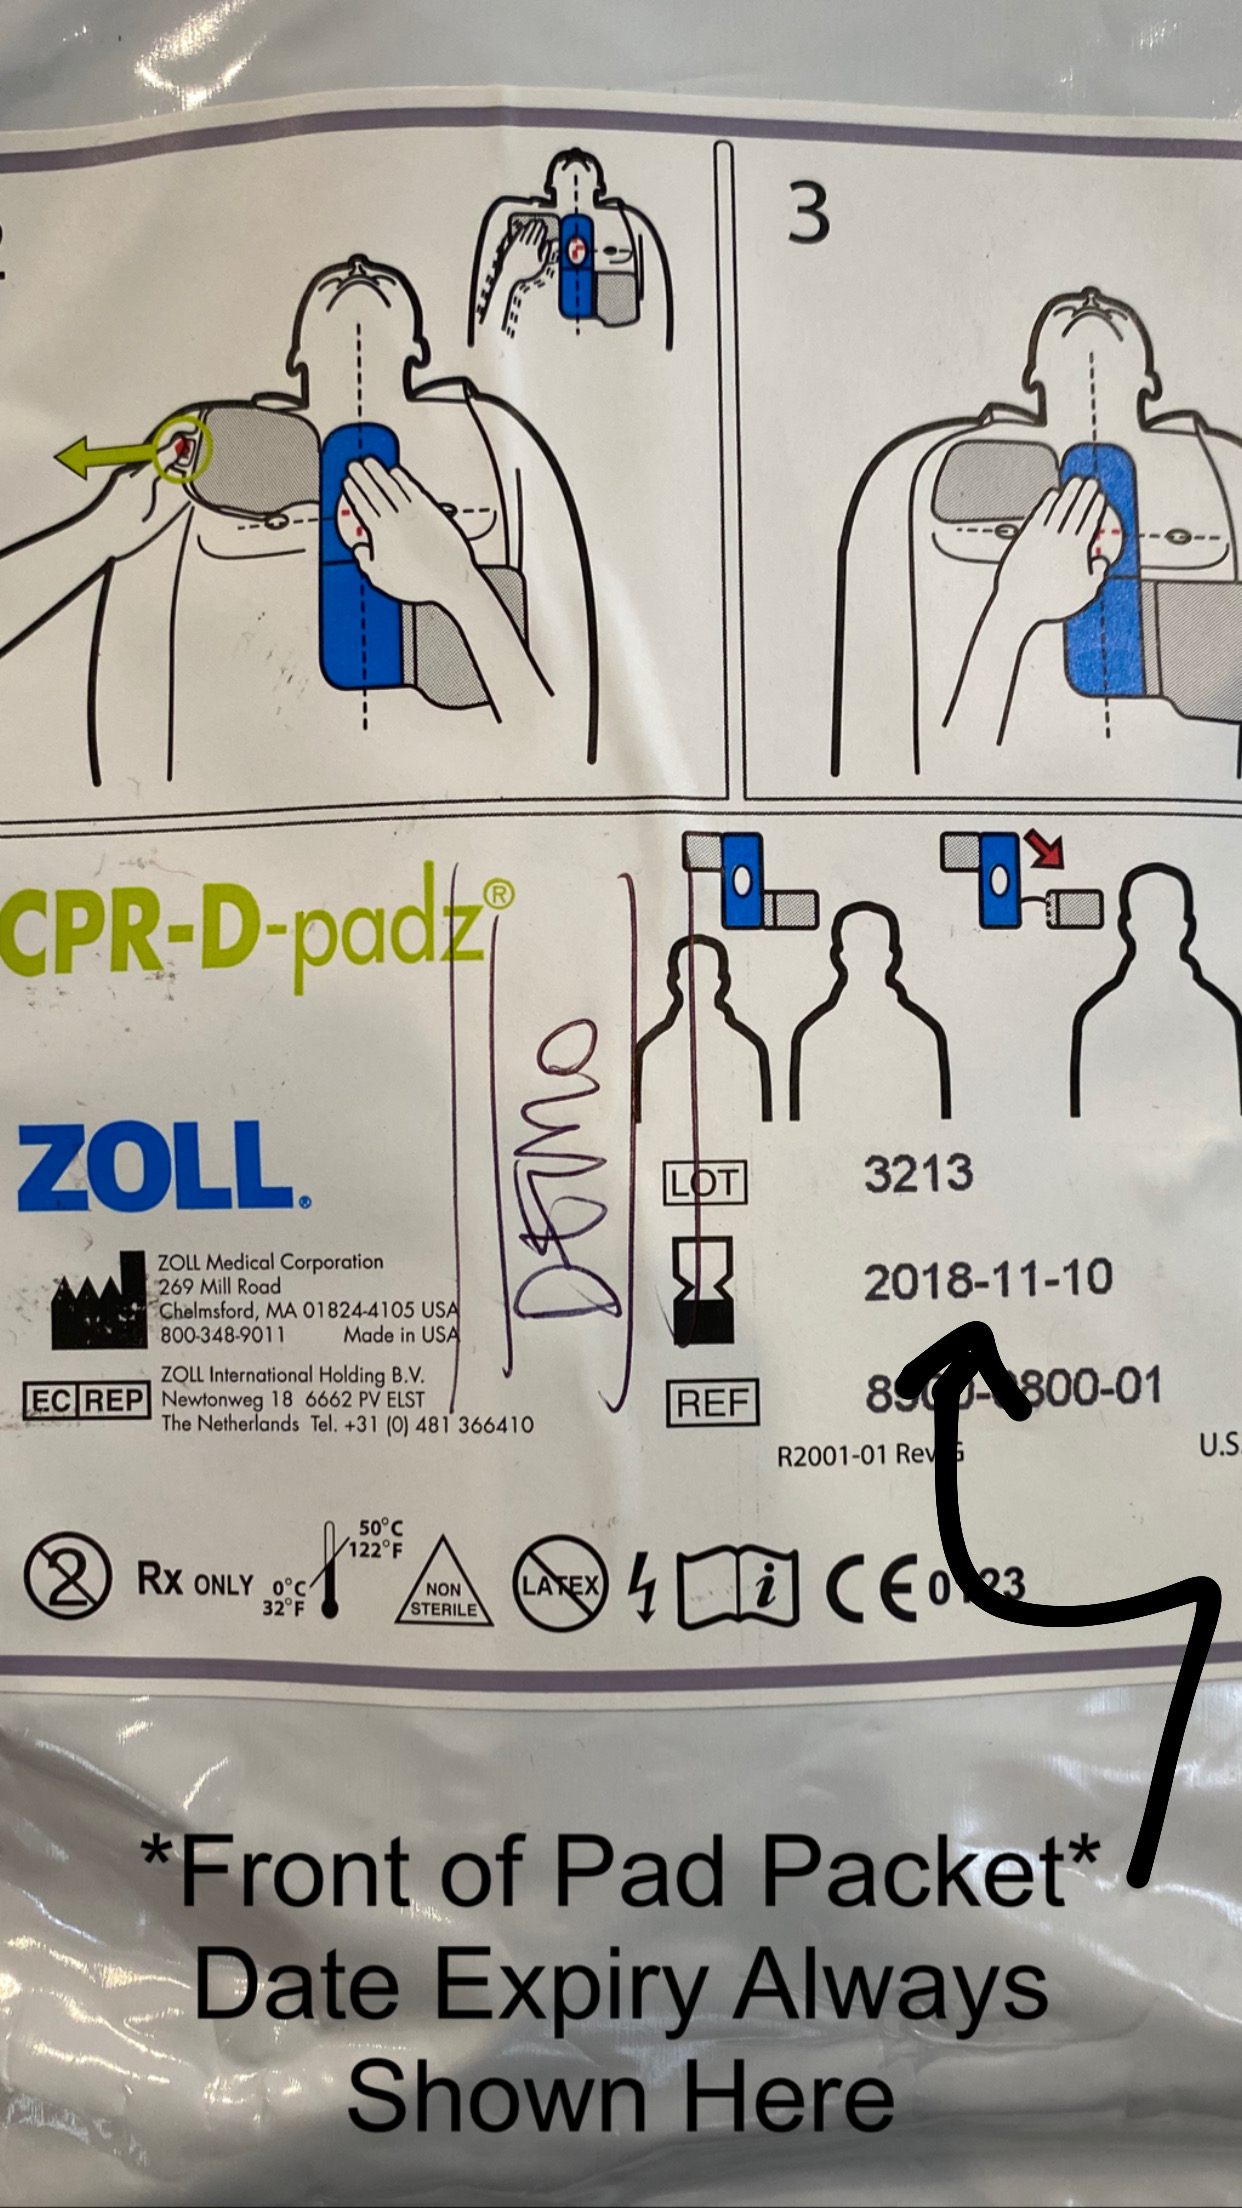 How Do I Know When ZOLL AED Plus Pads Need Changing?